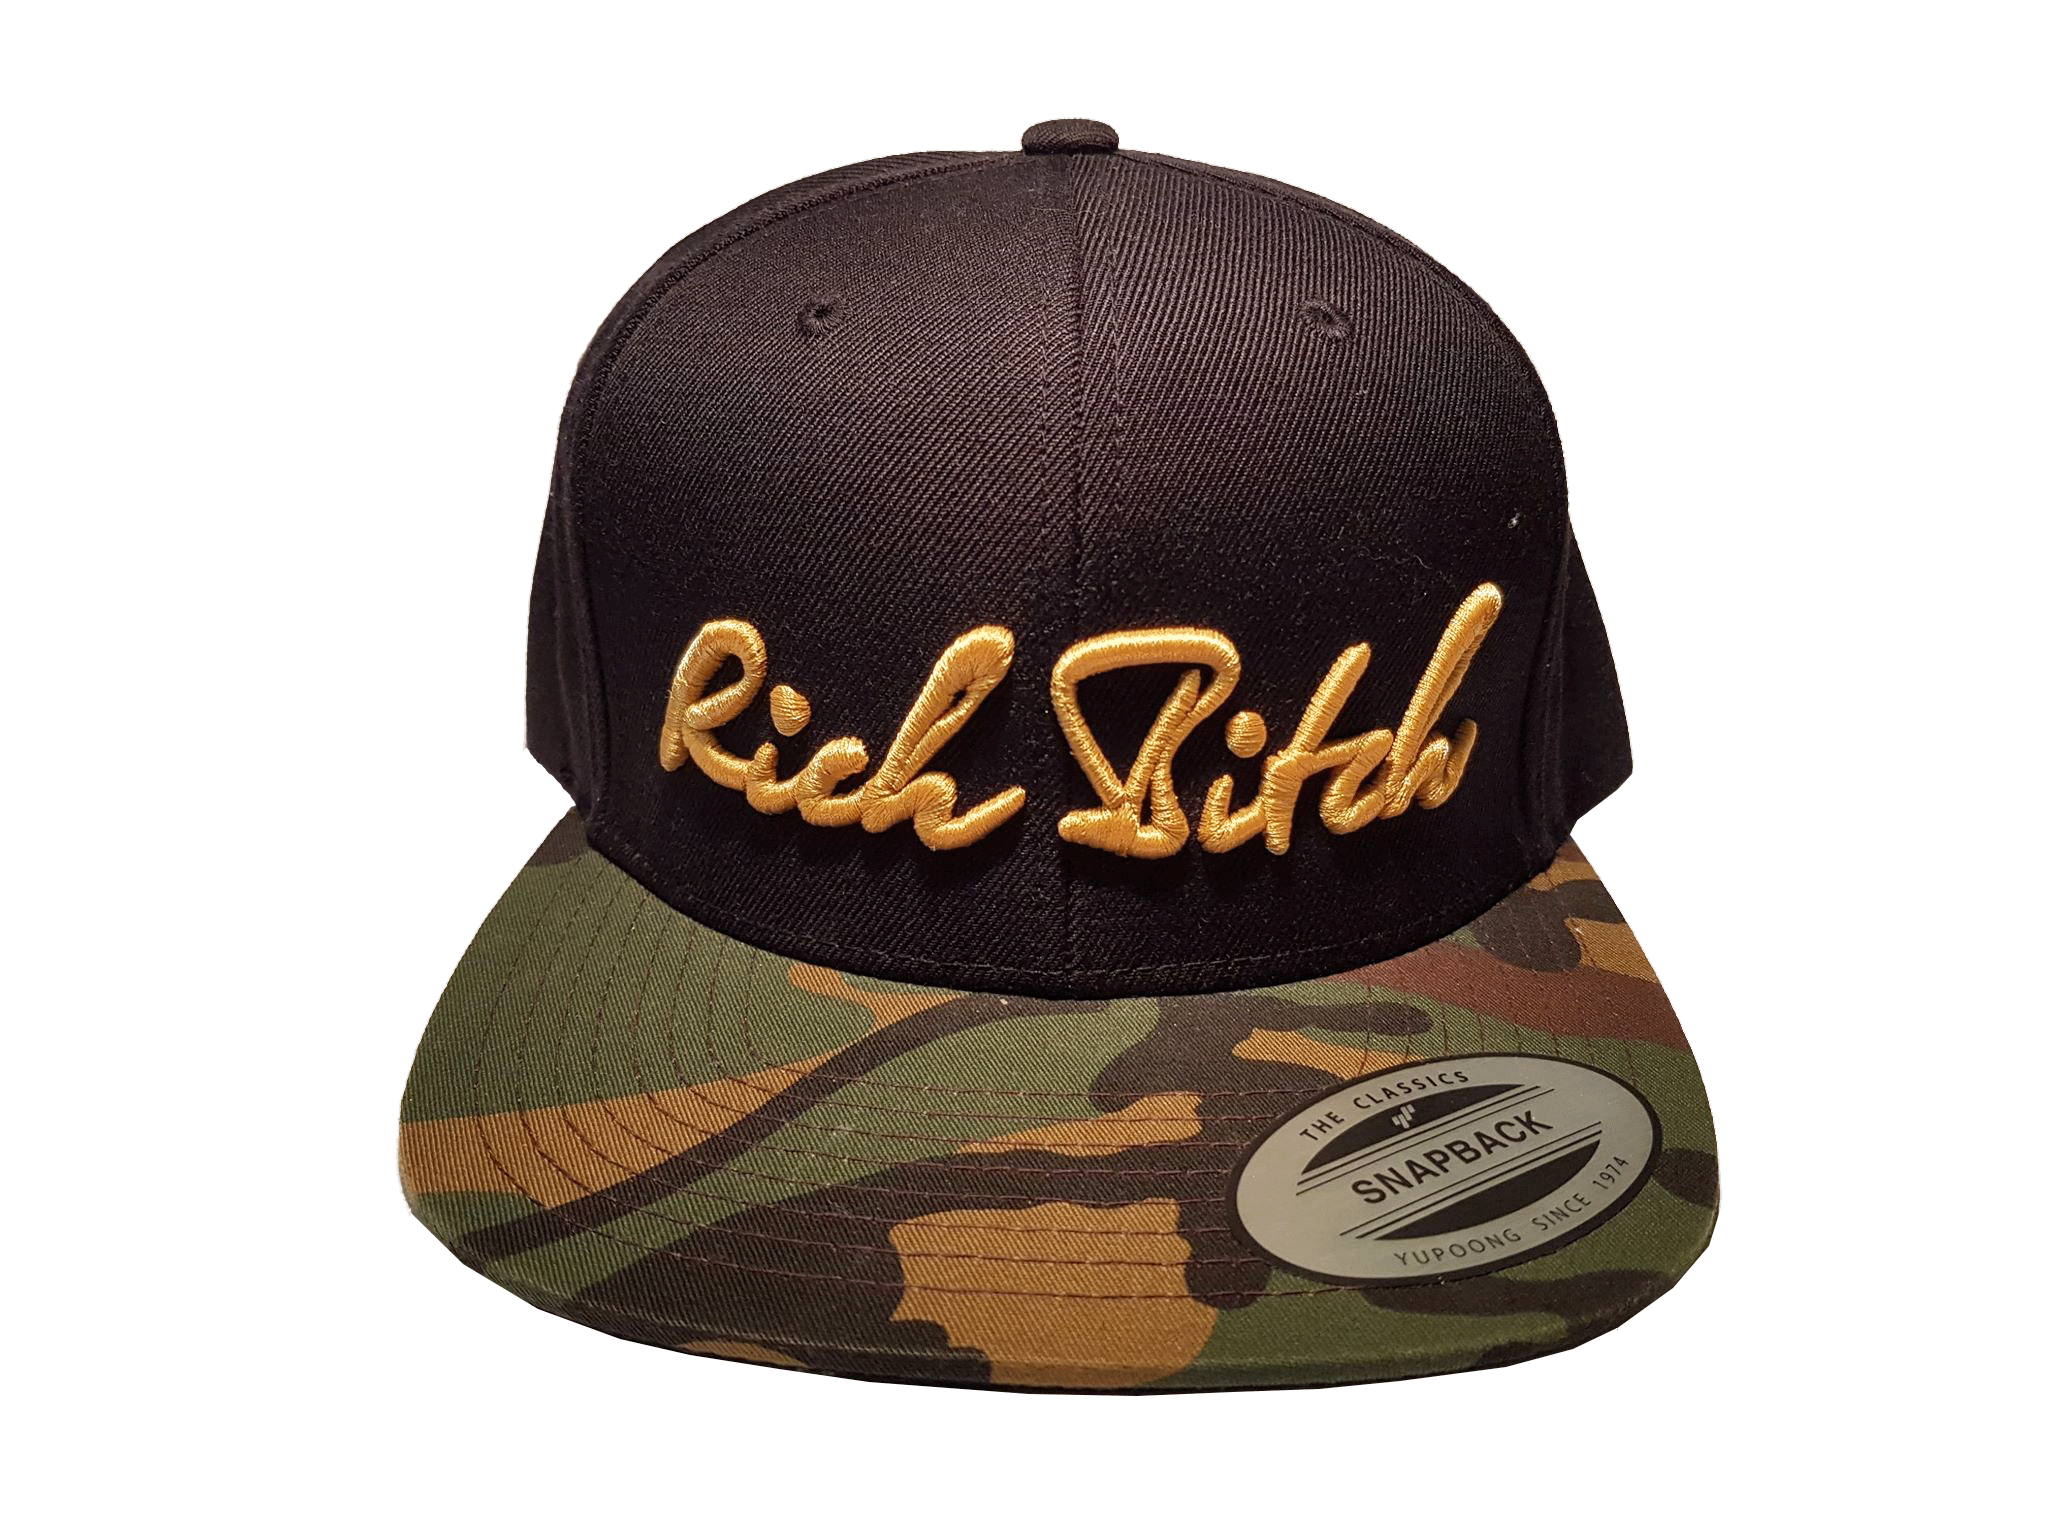 RICH BITCH snapback army cap